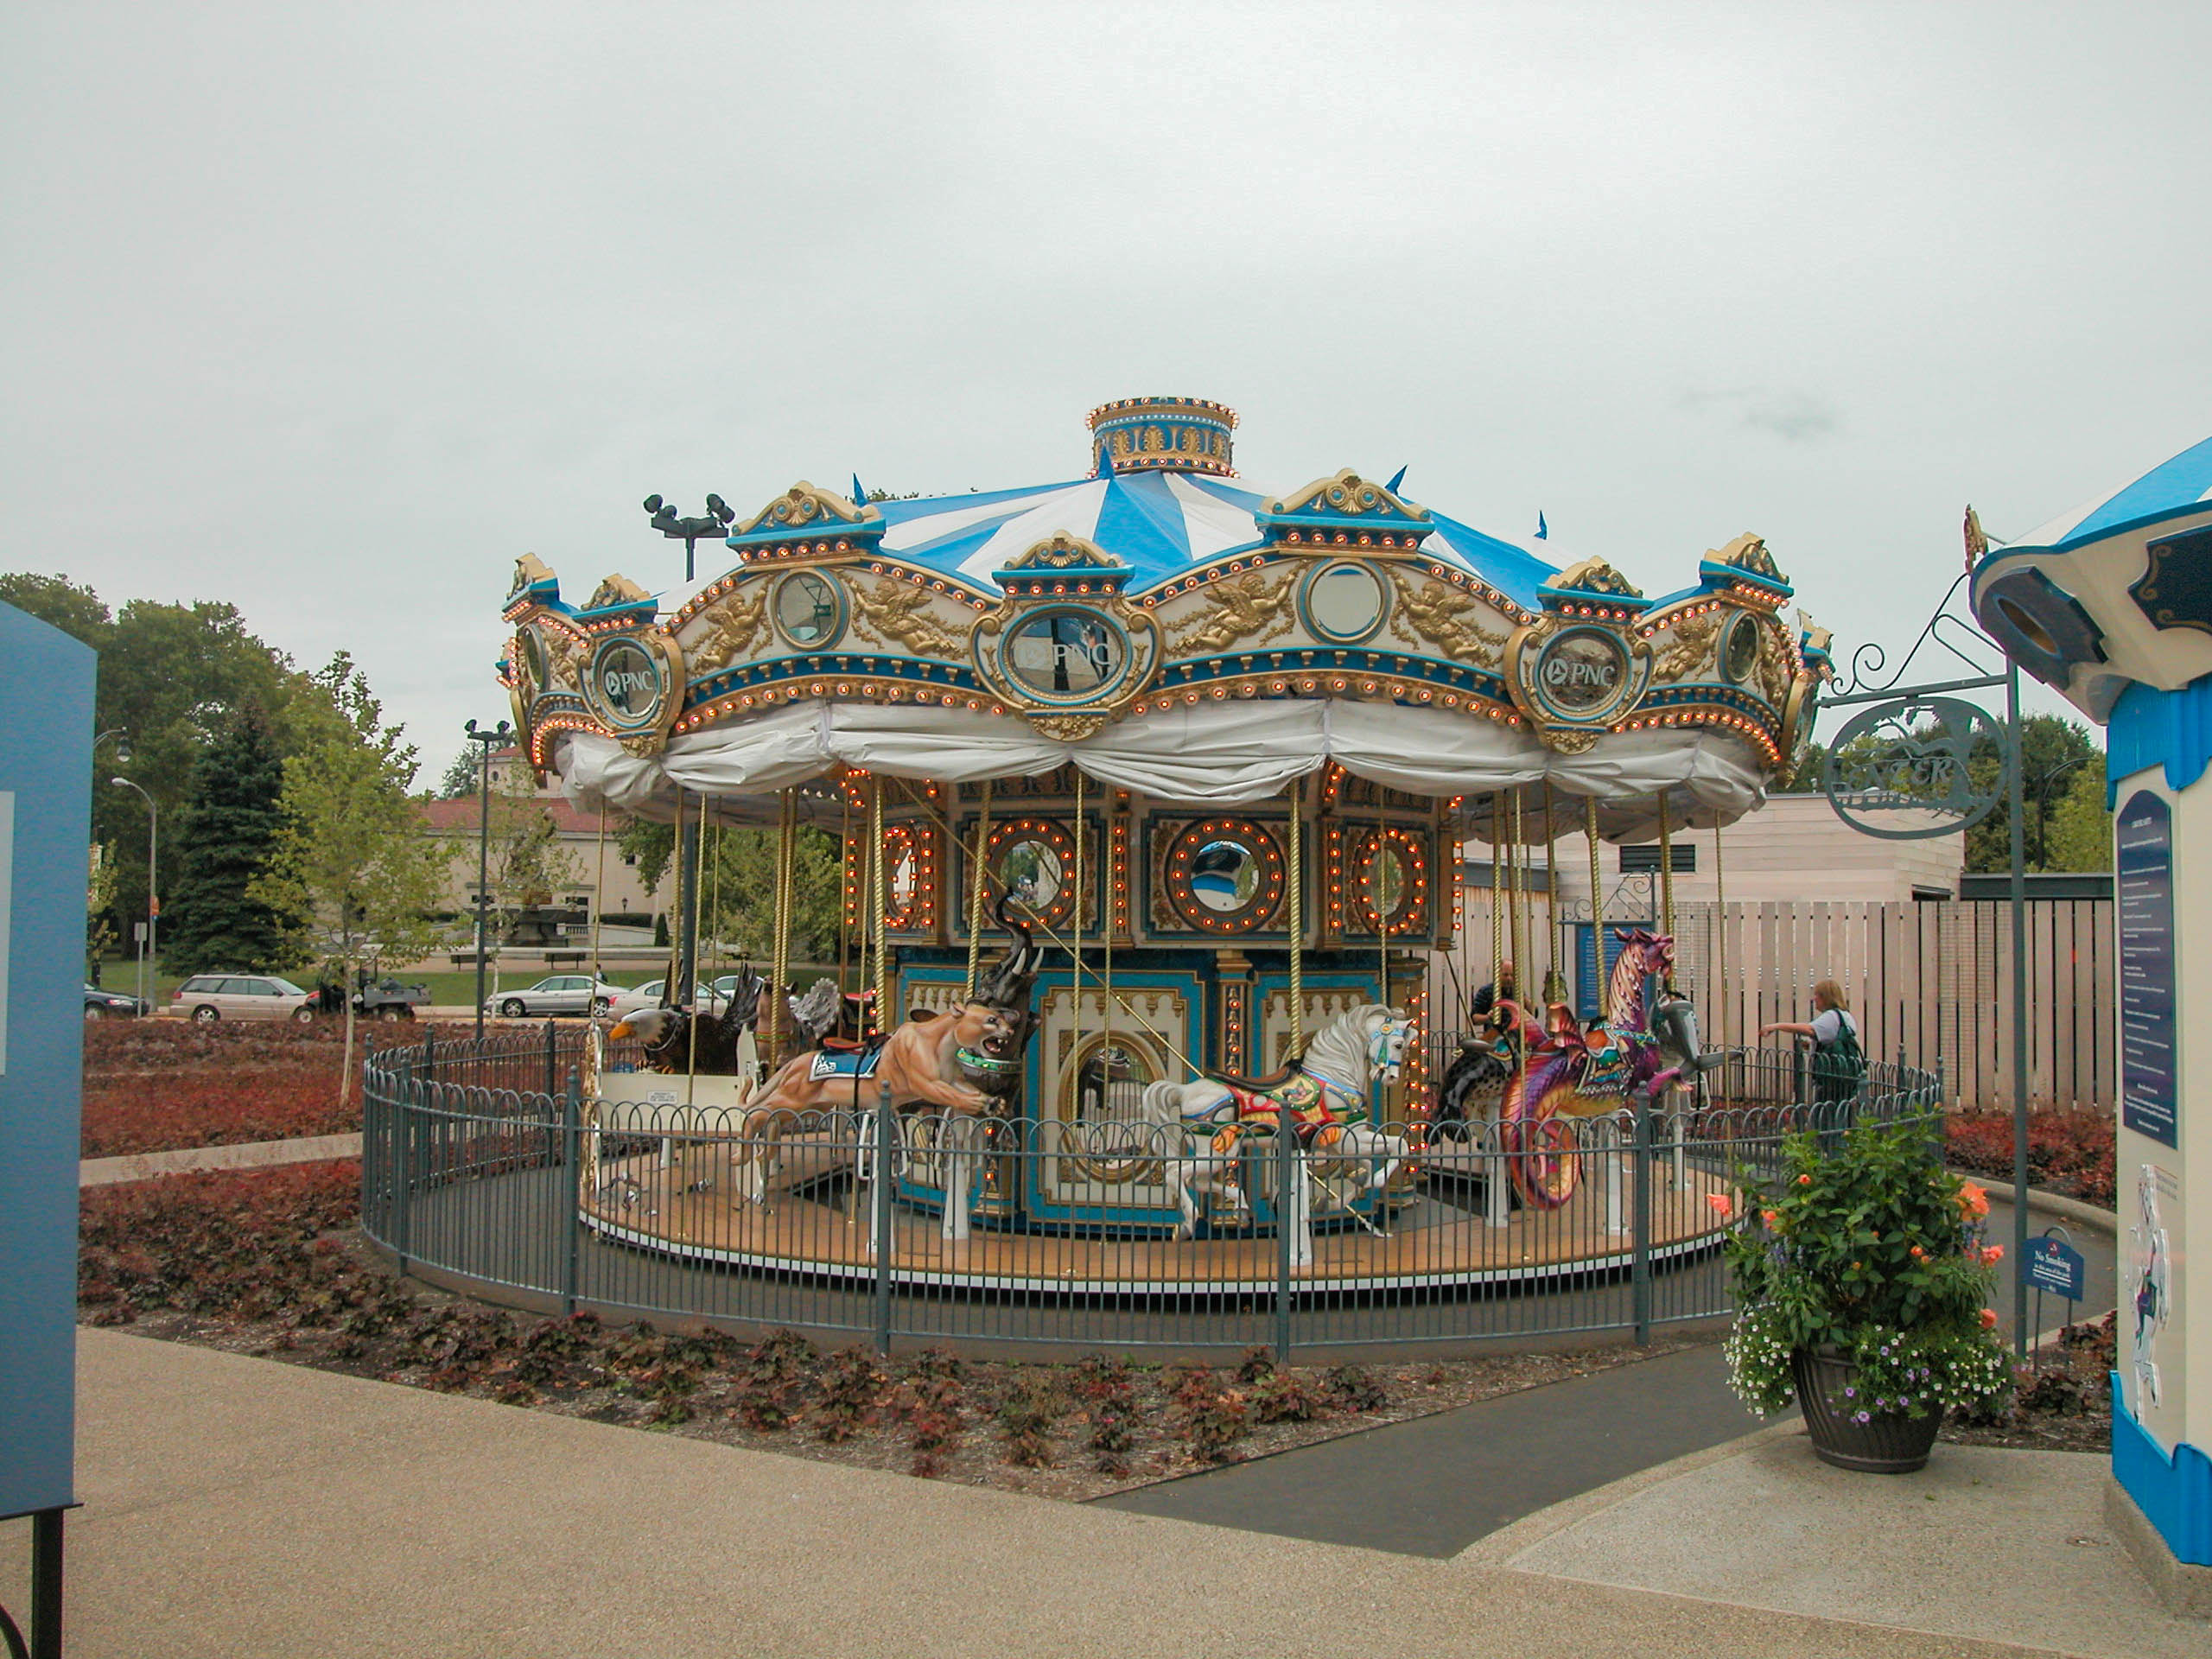 File:20060901 38 Carousel in Schenley Plaza, Pittsburgh ...